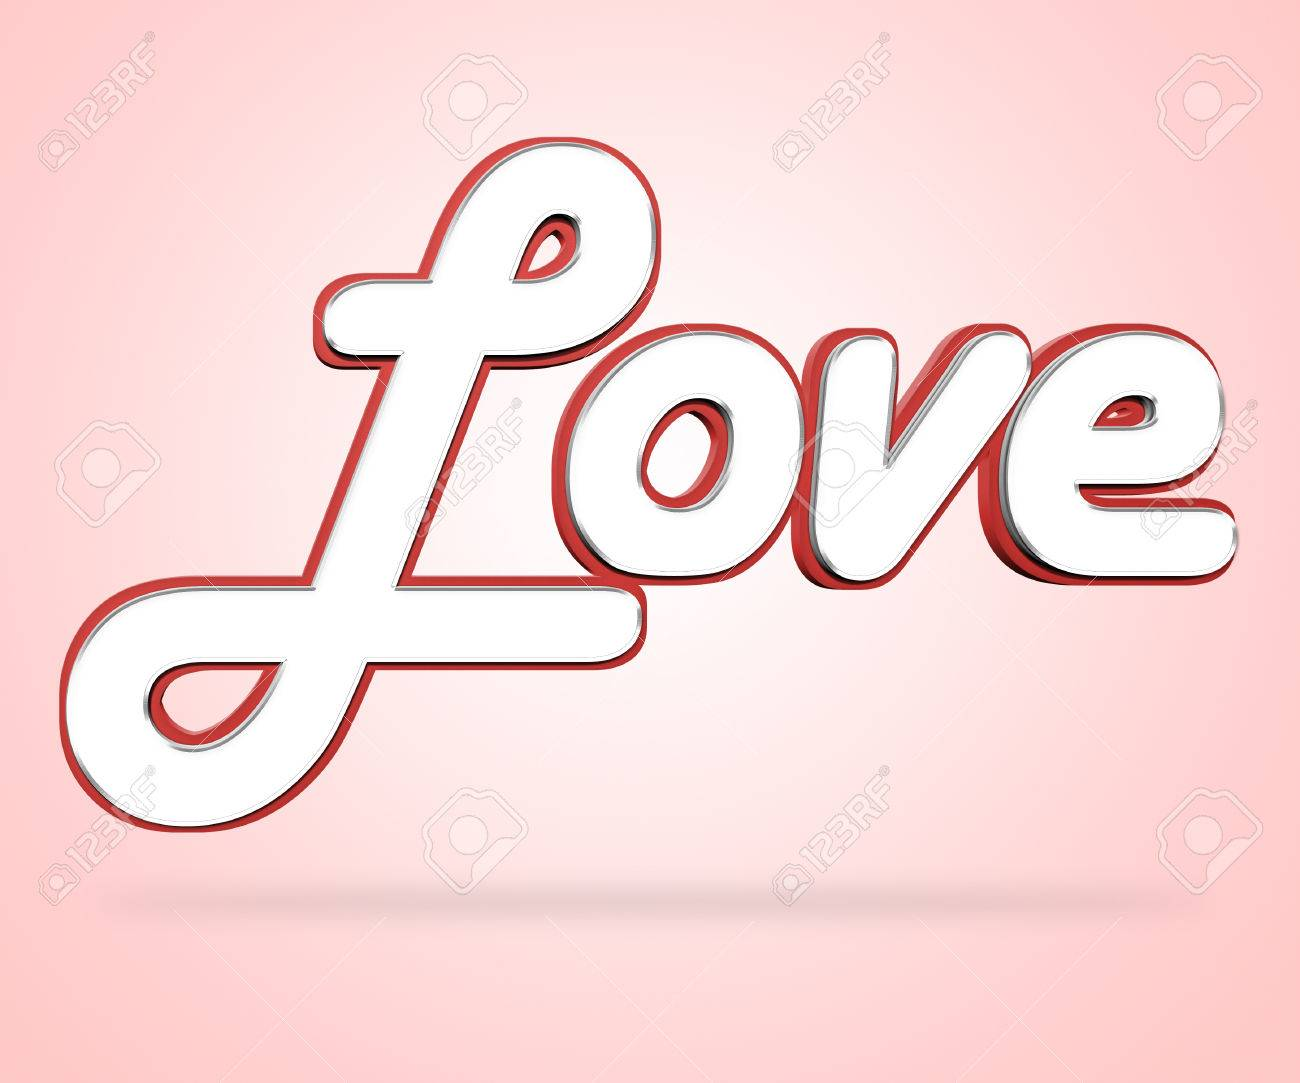 Love Word Meaning Lover Loving And Boyfriend Stock Photo